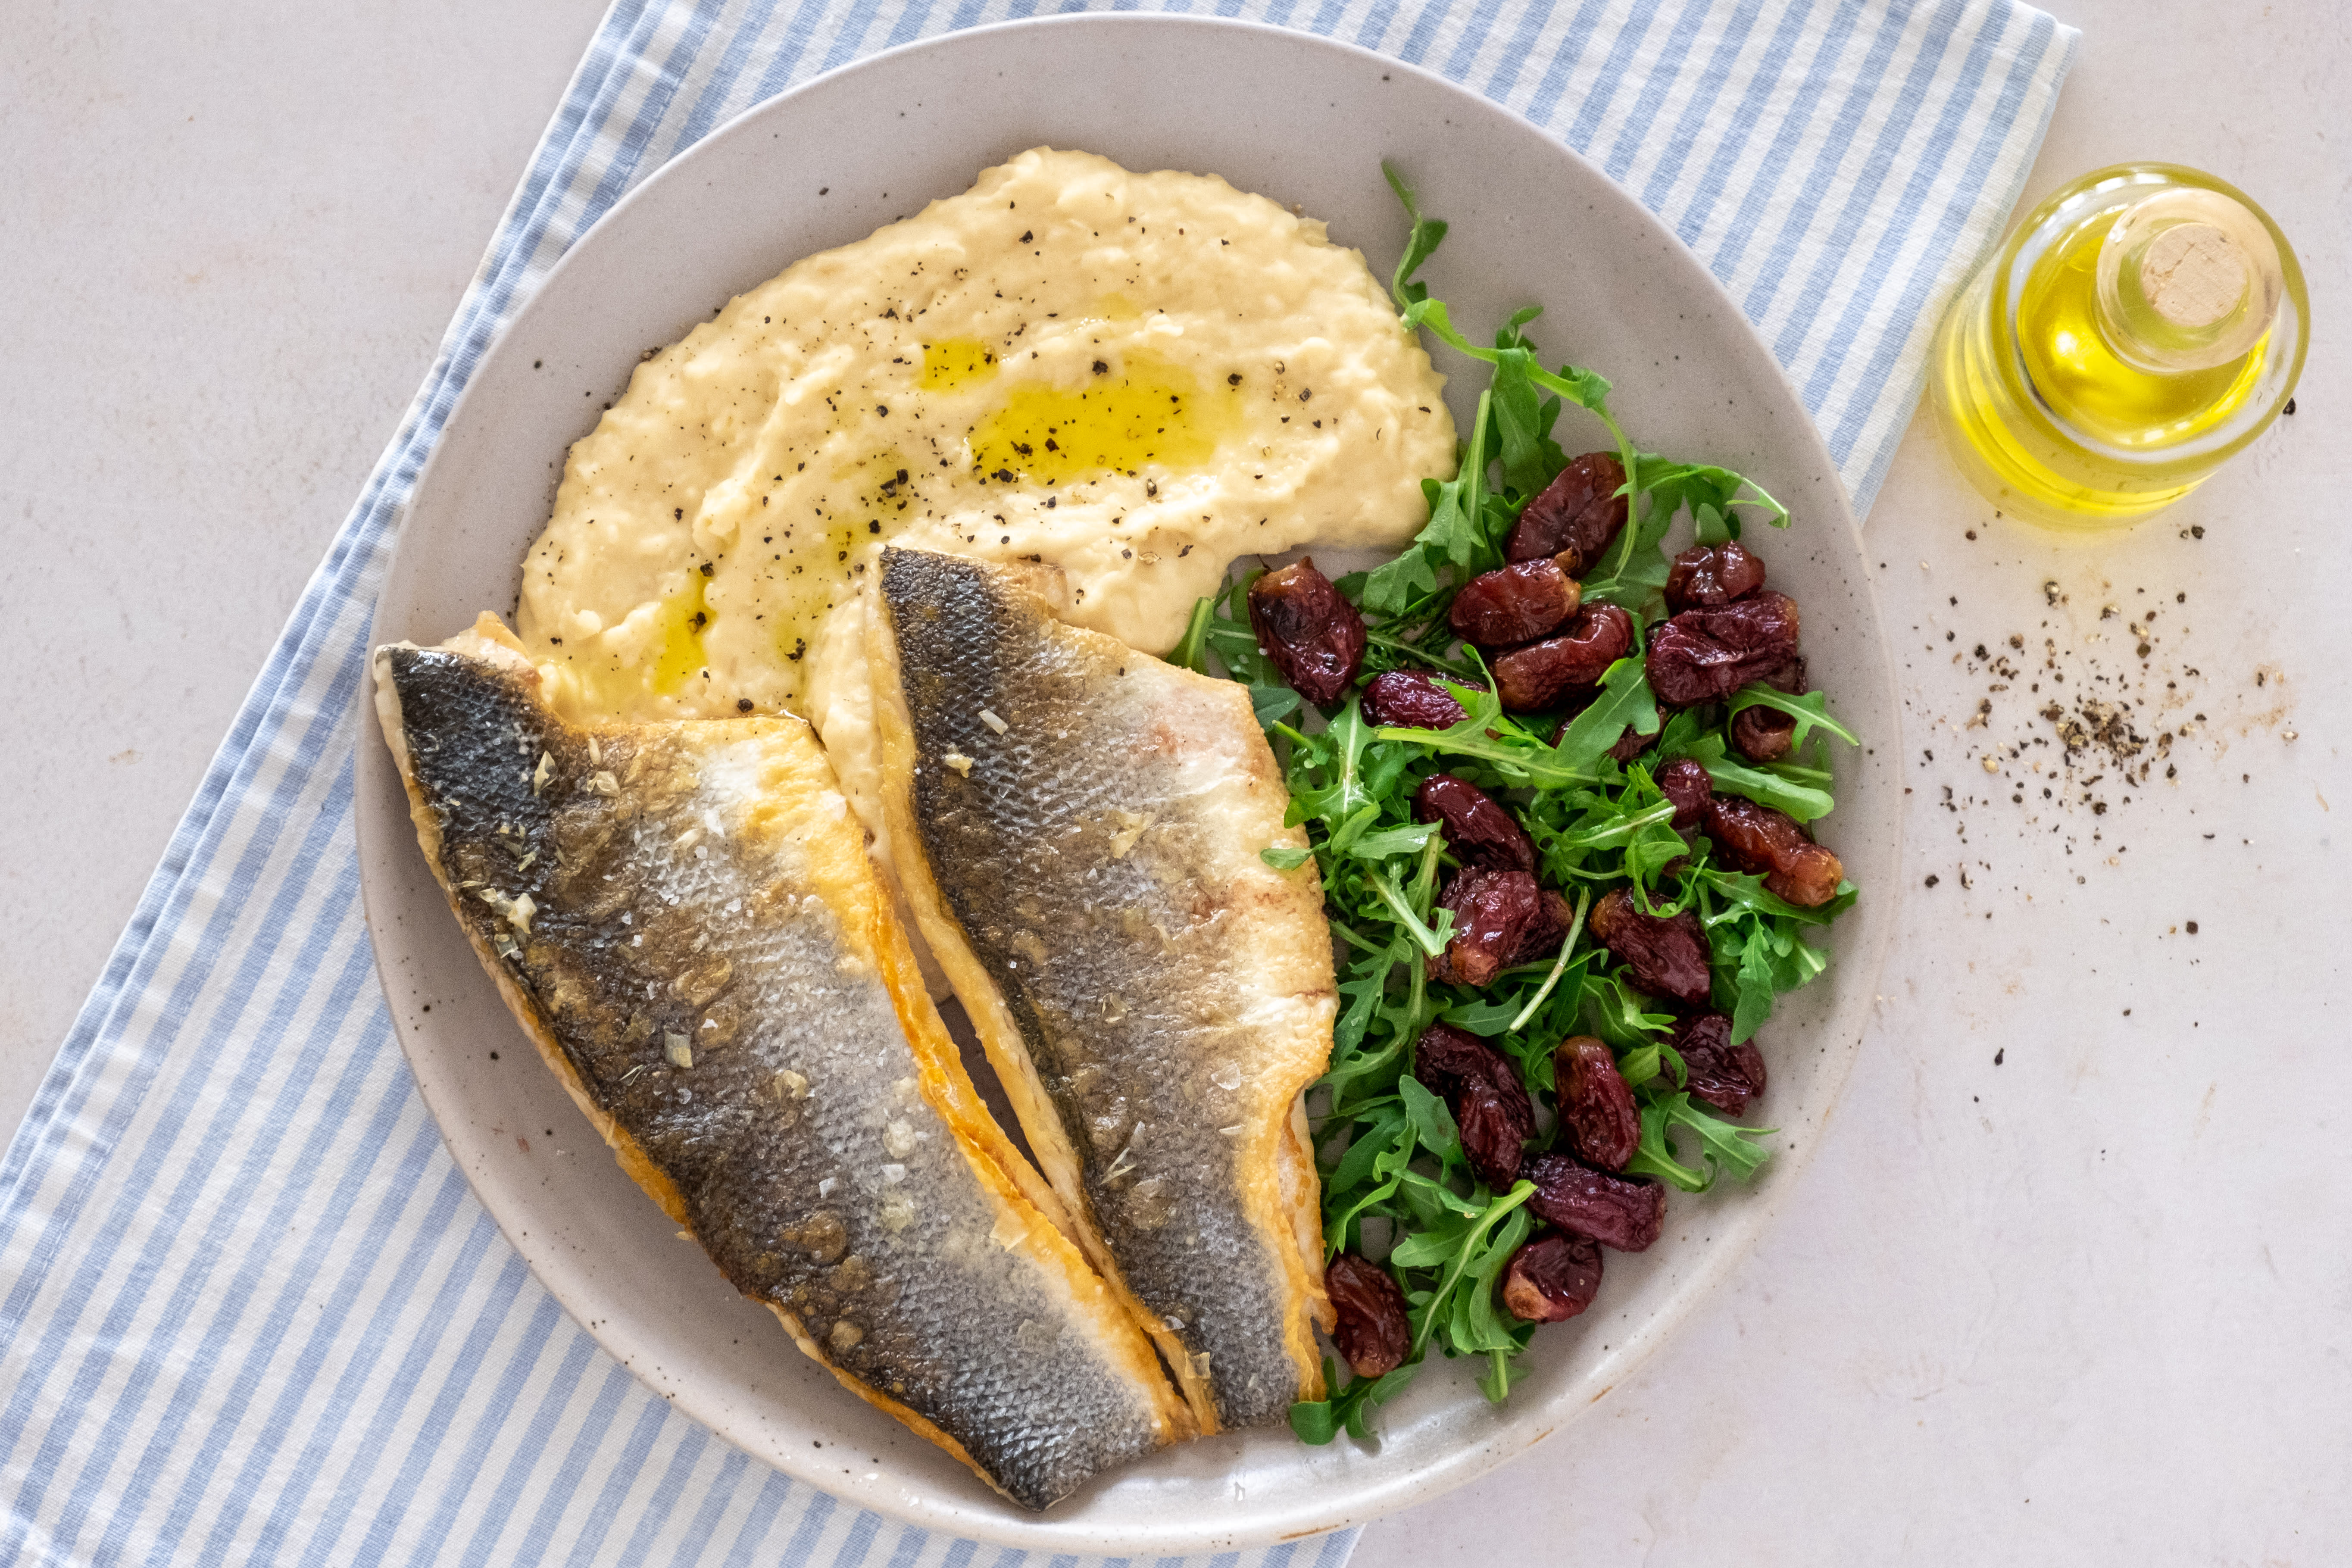 Mediterranean-style Seabass with White Bean Puree and Roasted Grape Salad